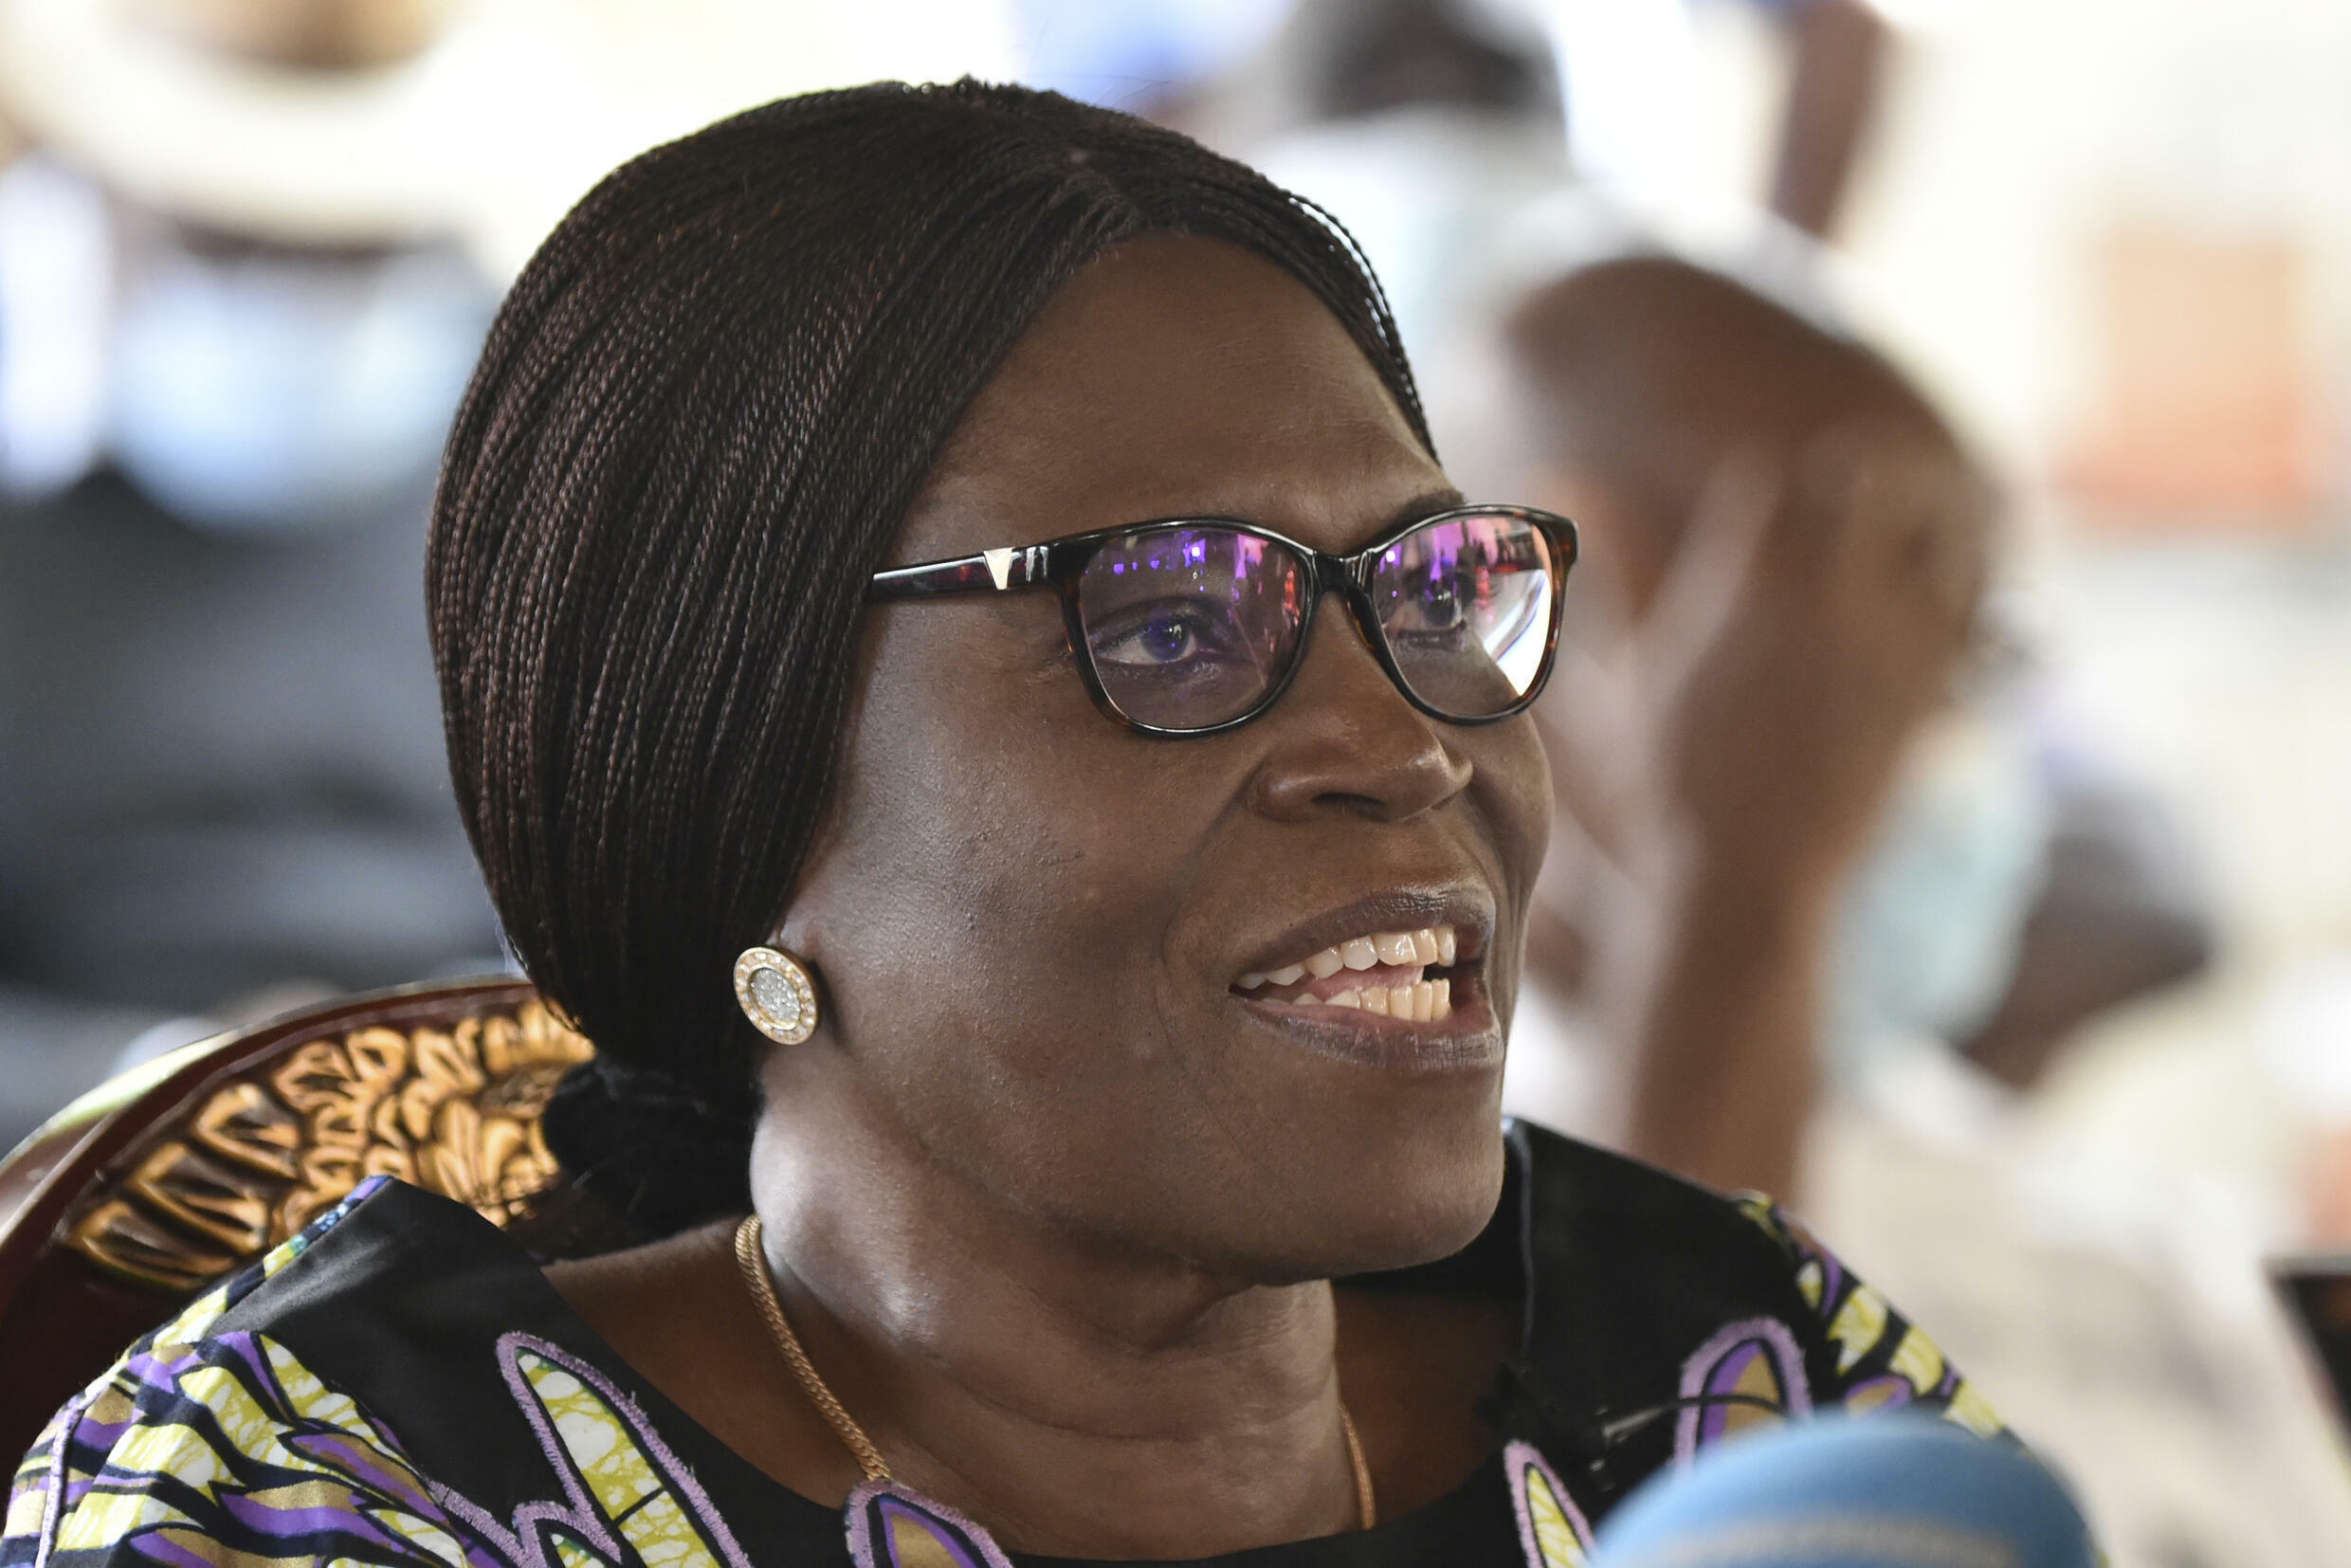 Former Ivory Coast first lady Simone Gbagbo, seen here in August 2020, faced charges of crimes against humanity following her husband's refusal to hand over power to Alassane Ouattara, who won a 2010 election